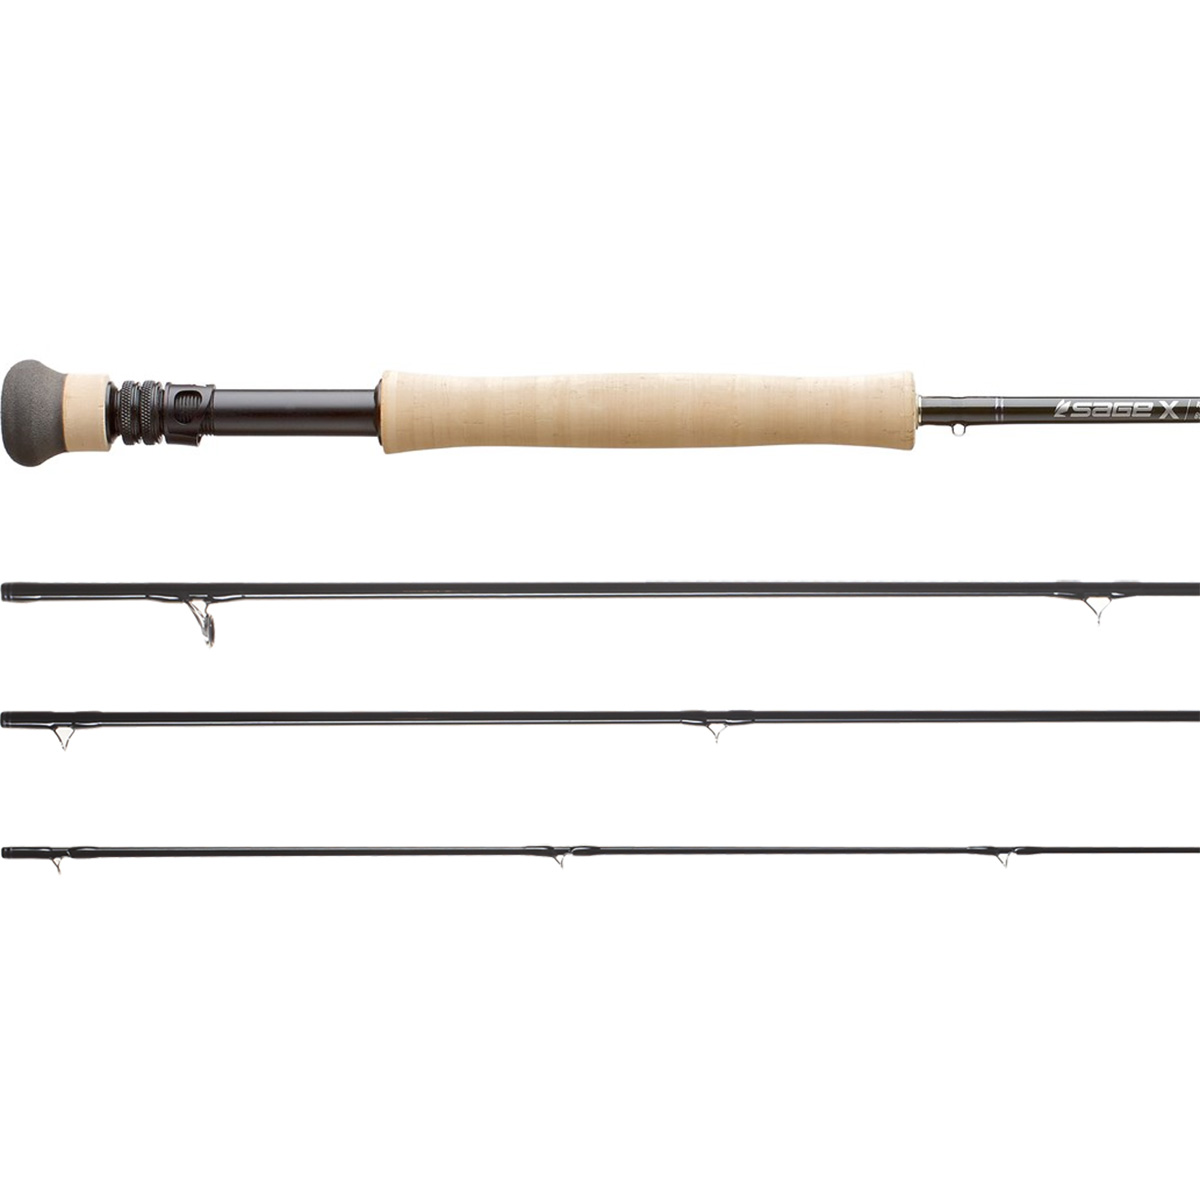 Sage x rod fly fishing rods for Fly fishing with spinning rod